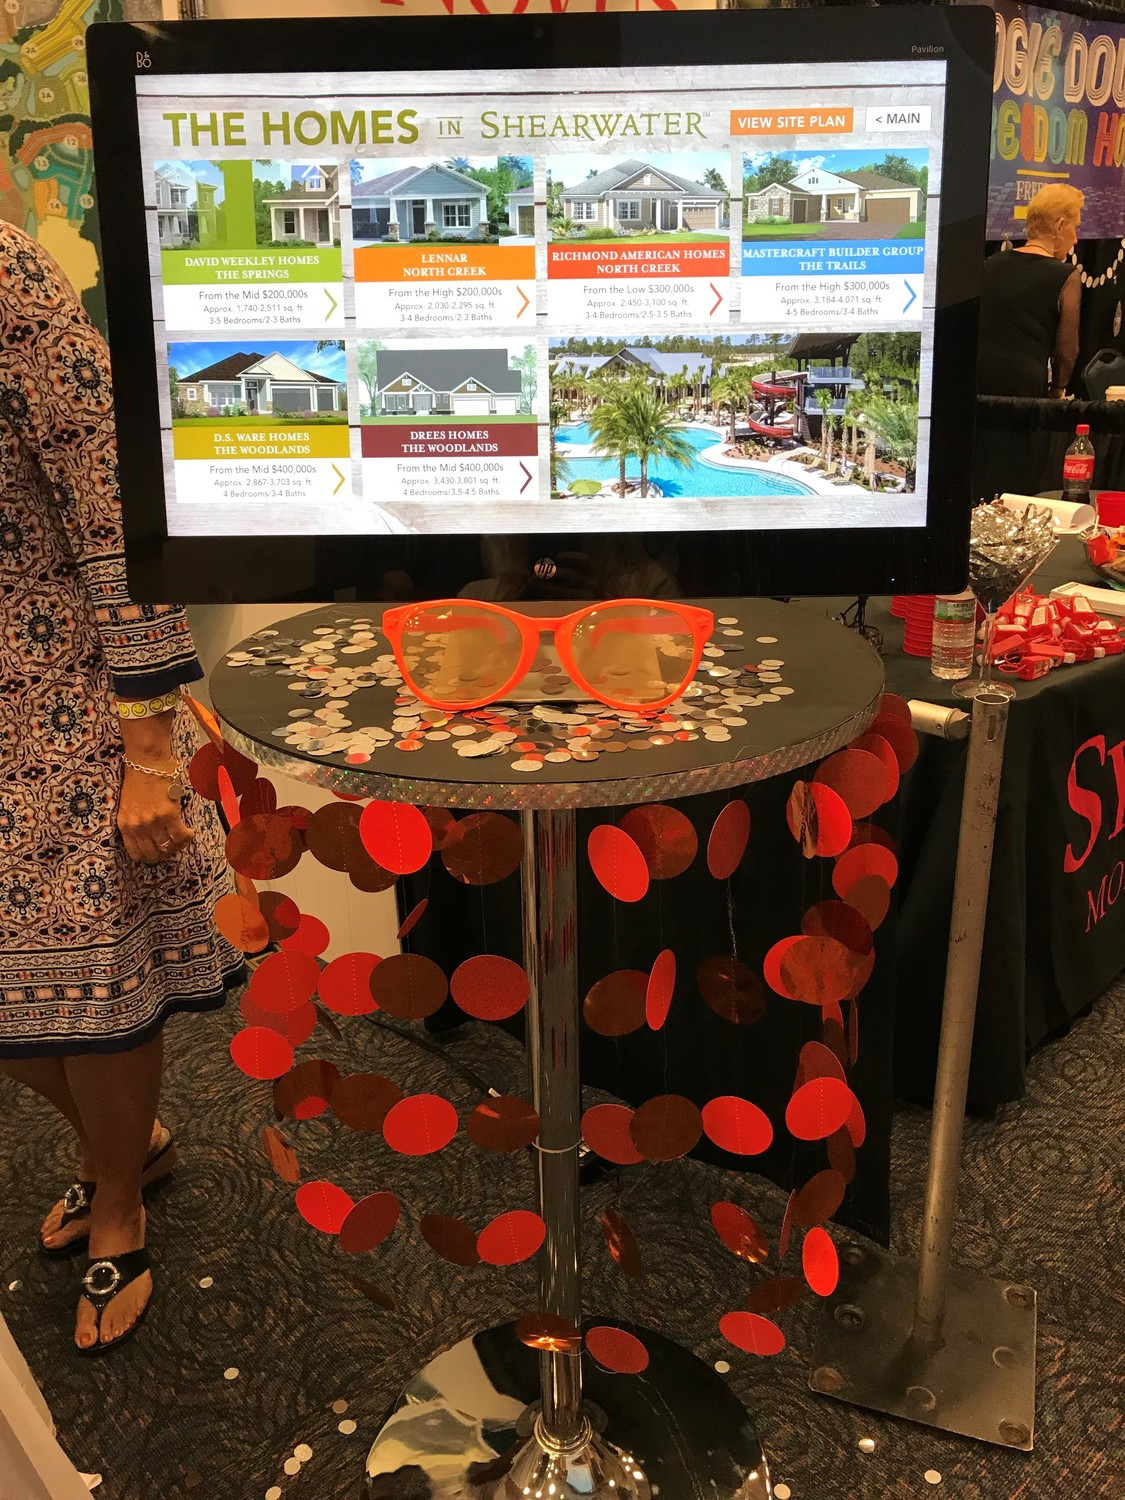 Shearwater's booth offered virtual tours of the community's various model homes.